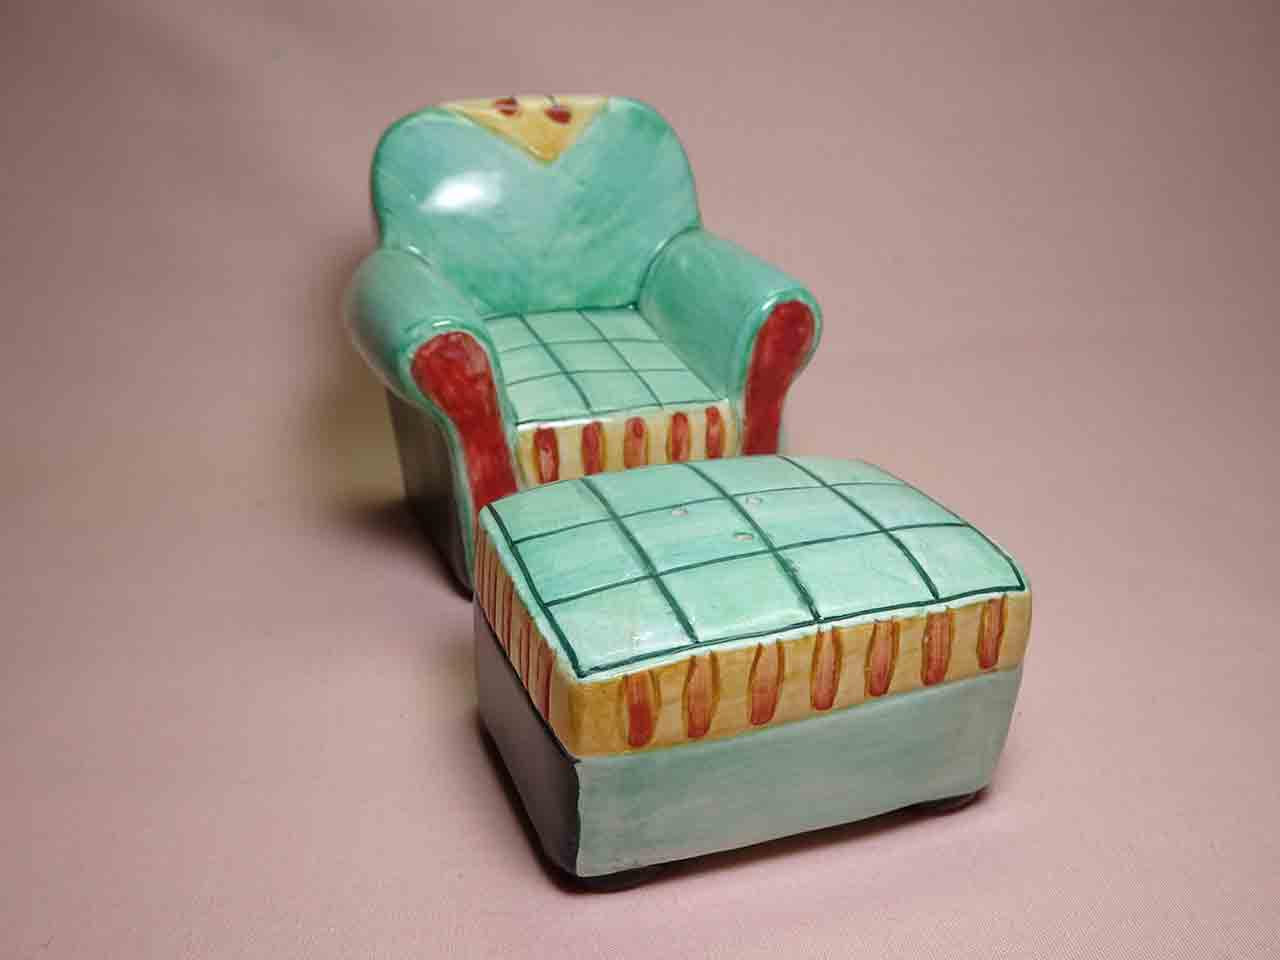 Vandor household items salt and pepper shakers - chair & ottoman